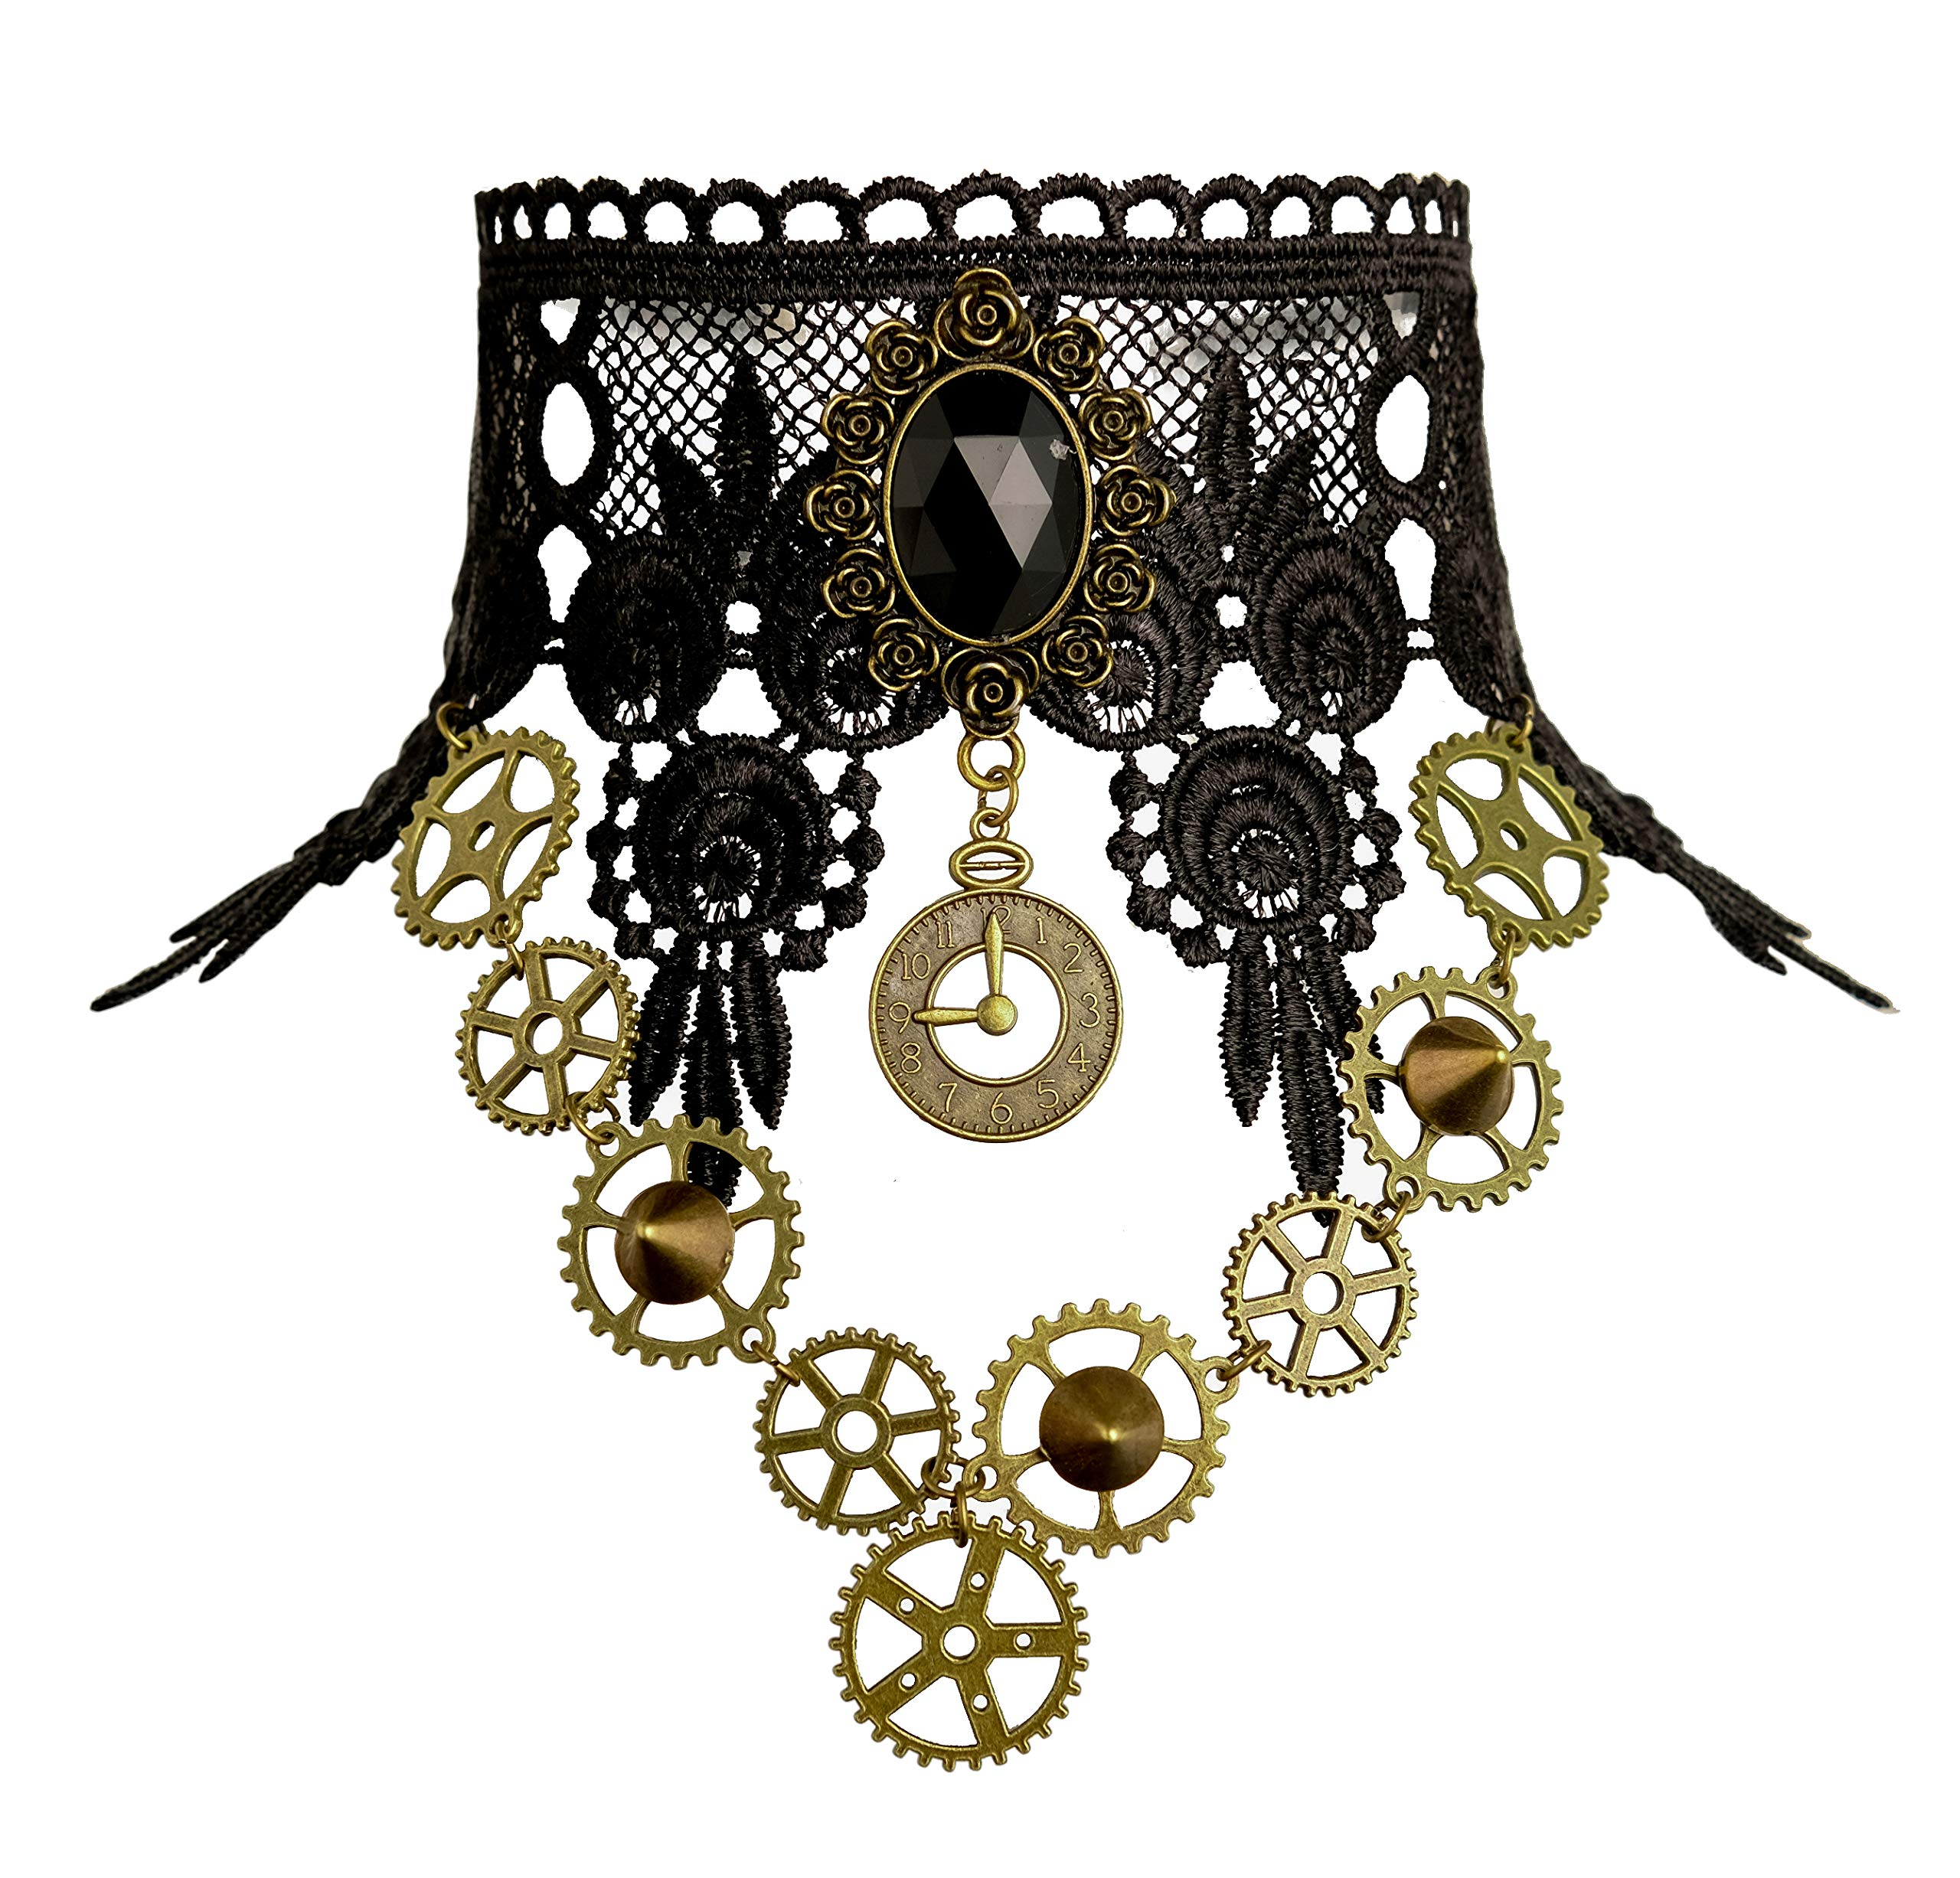 Zivyes Steampunk Accessories for Women Victorian Costume Gothic Lolita Choker Necklace Bracelet Earrings 4